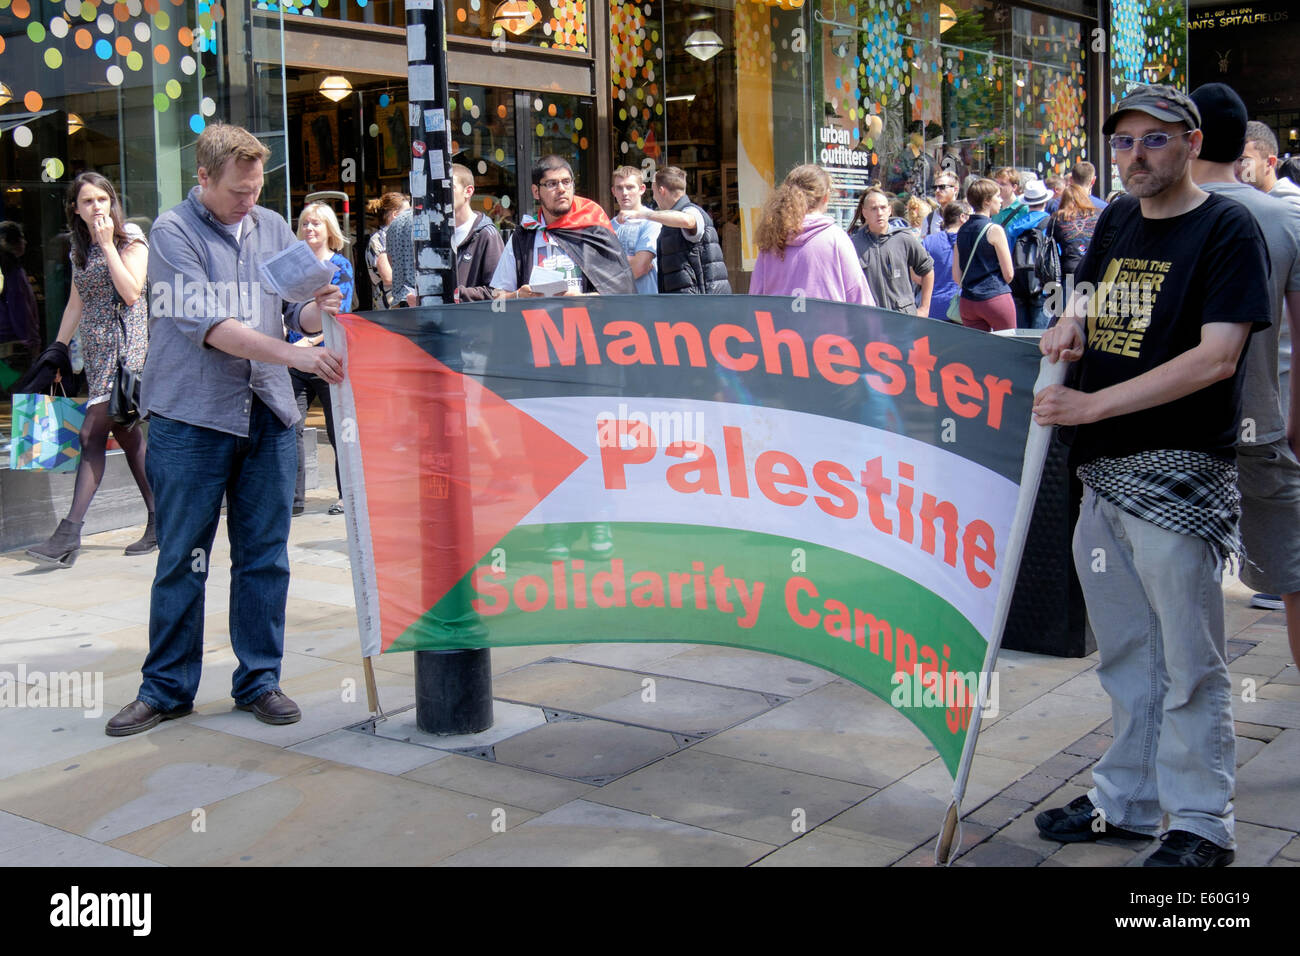 Manchester, UK. 9th August 2014. Manchester Palestine Solidarity Campaign support the Pro Palestinian demonstration - Stock Image